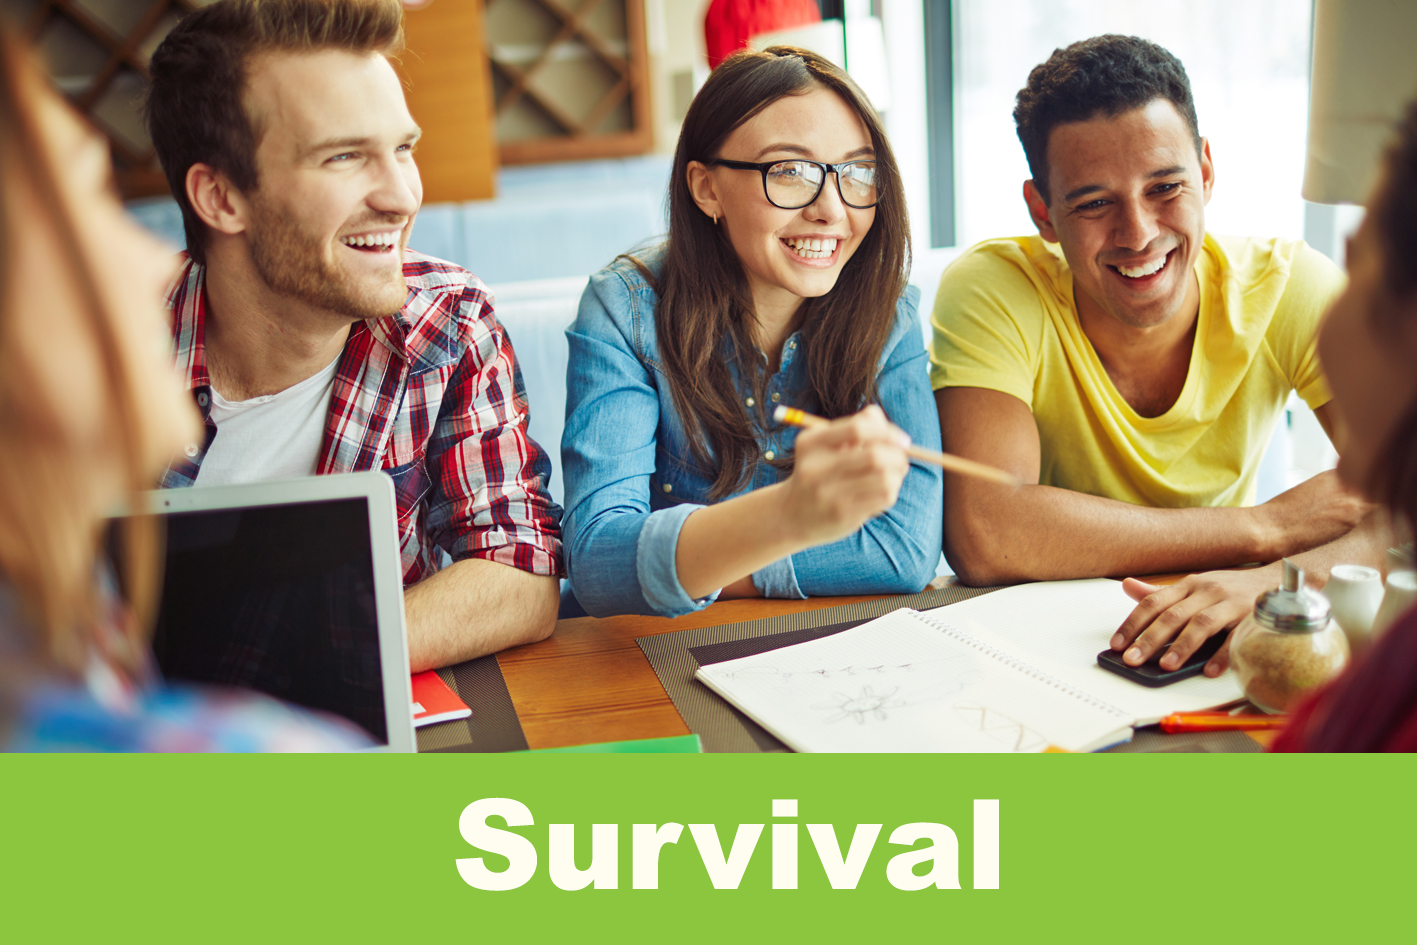 Survival One Week Intensive / 11 - 15 January 2021